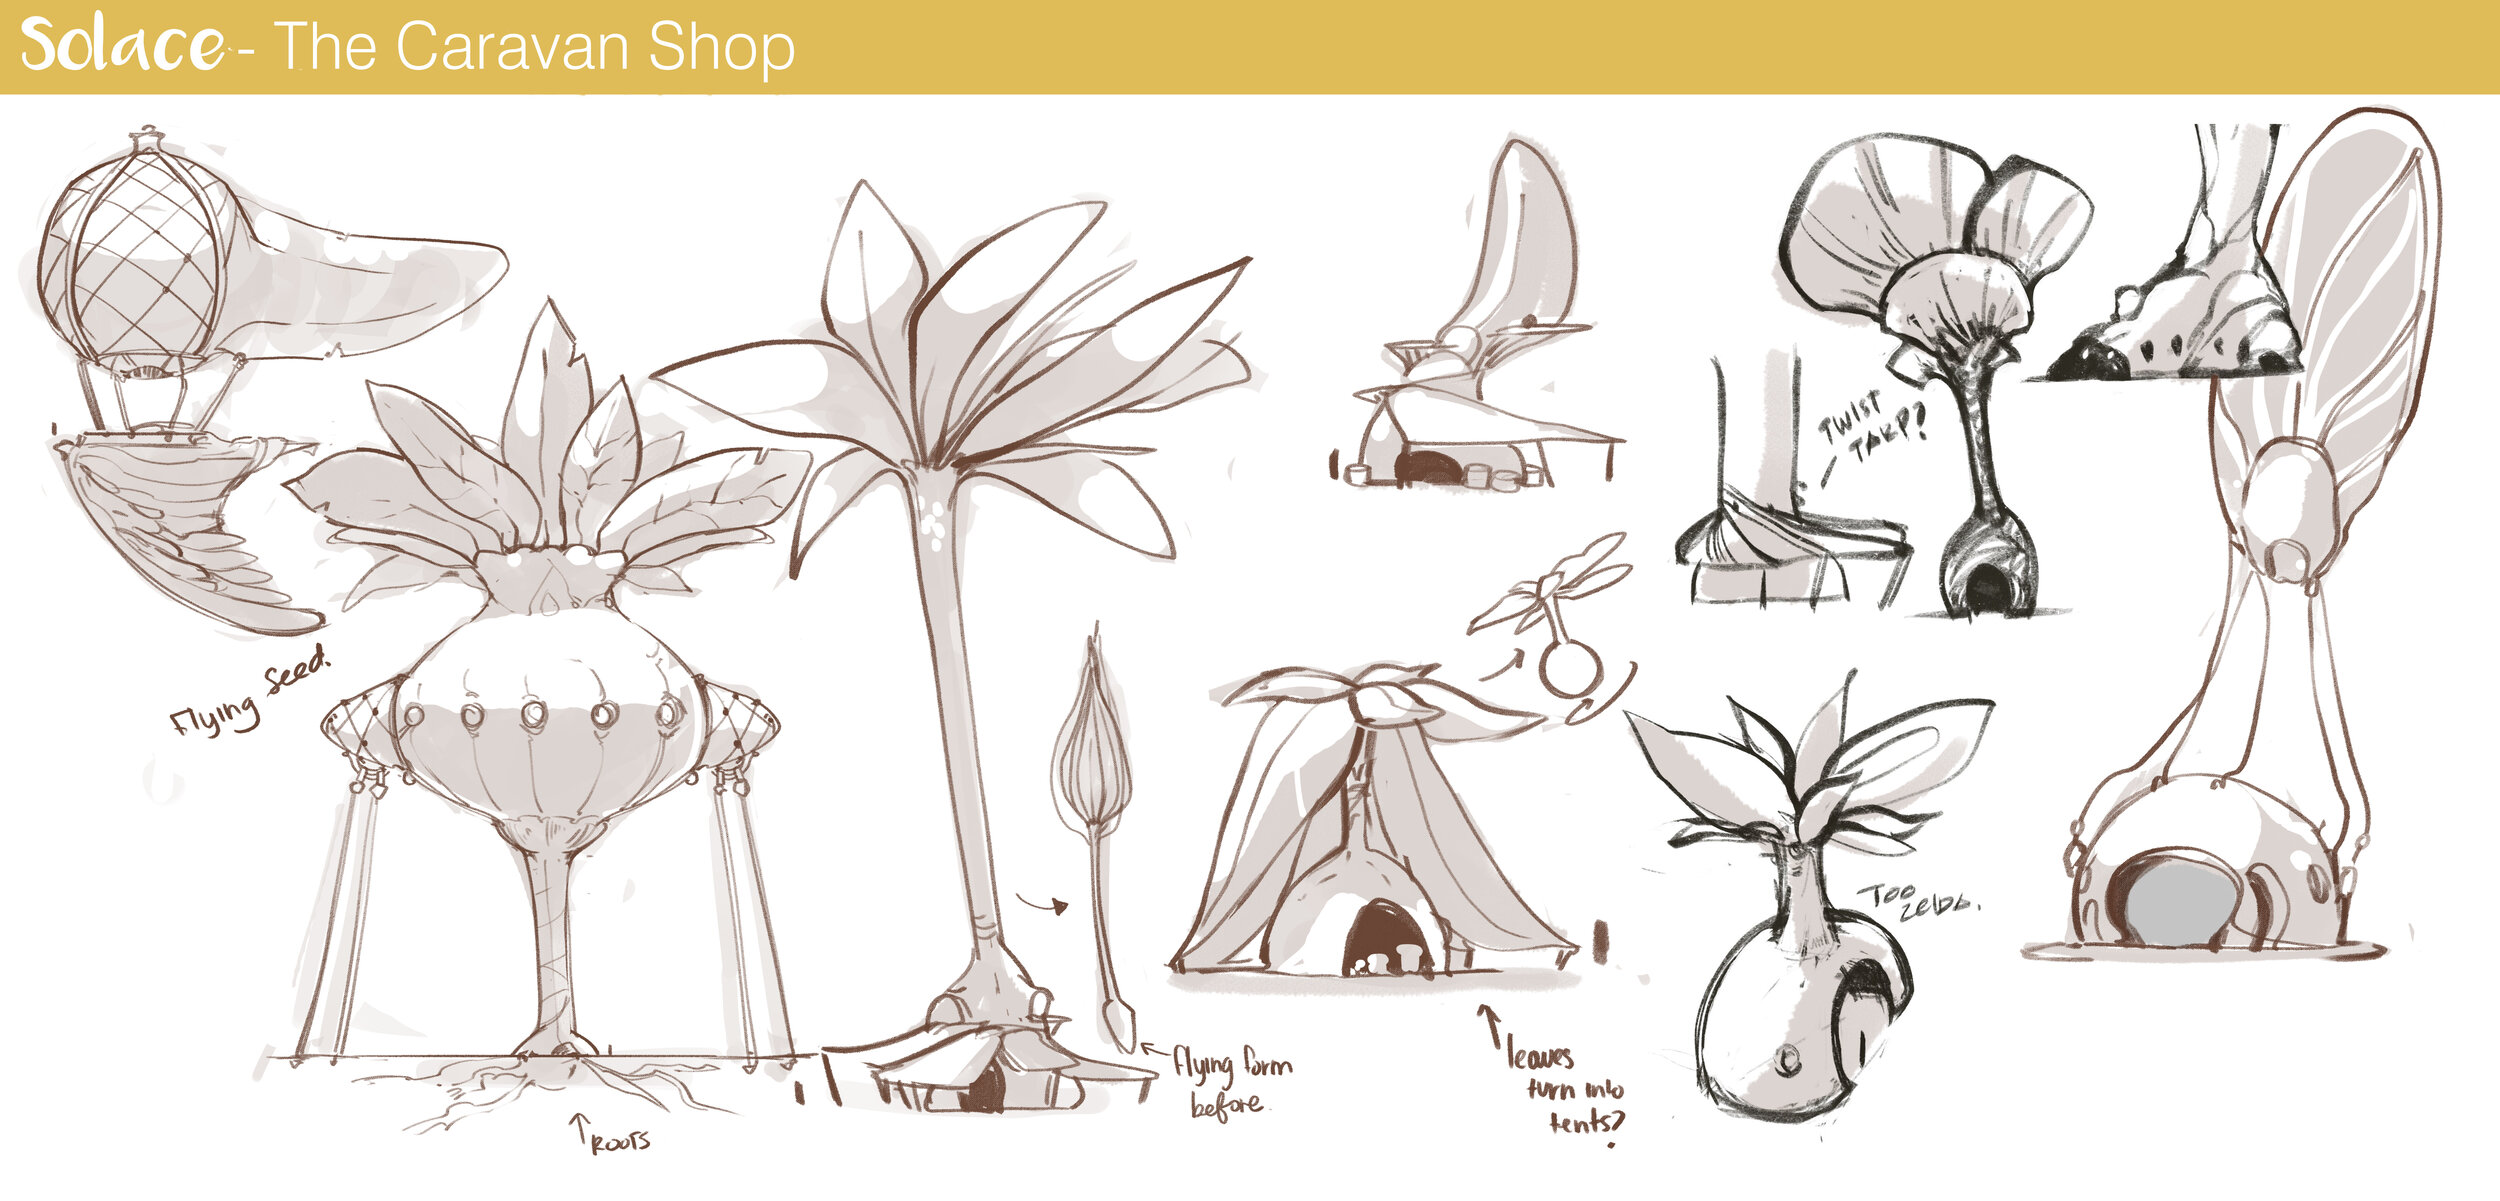 Caravan_Shop_Sketches.jpg